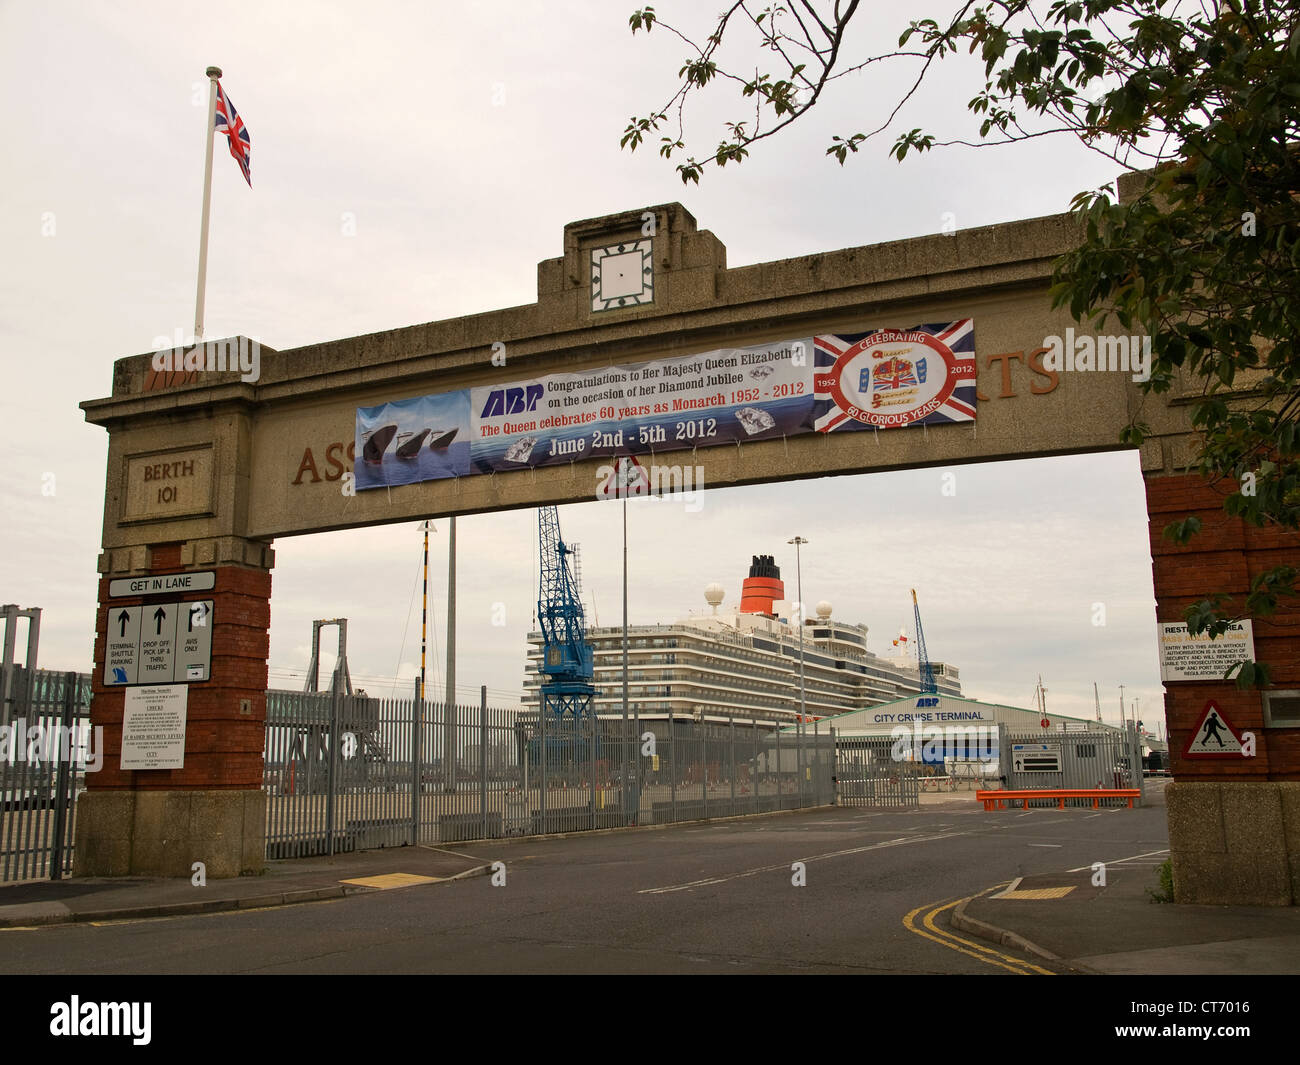 Entrance to Southampton Port displaying a banner congratulating Her Majesty Queen Elizabeth II on her Diamond Jubilee - Stock Image